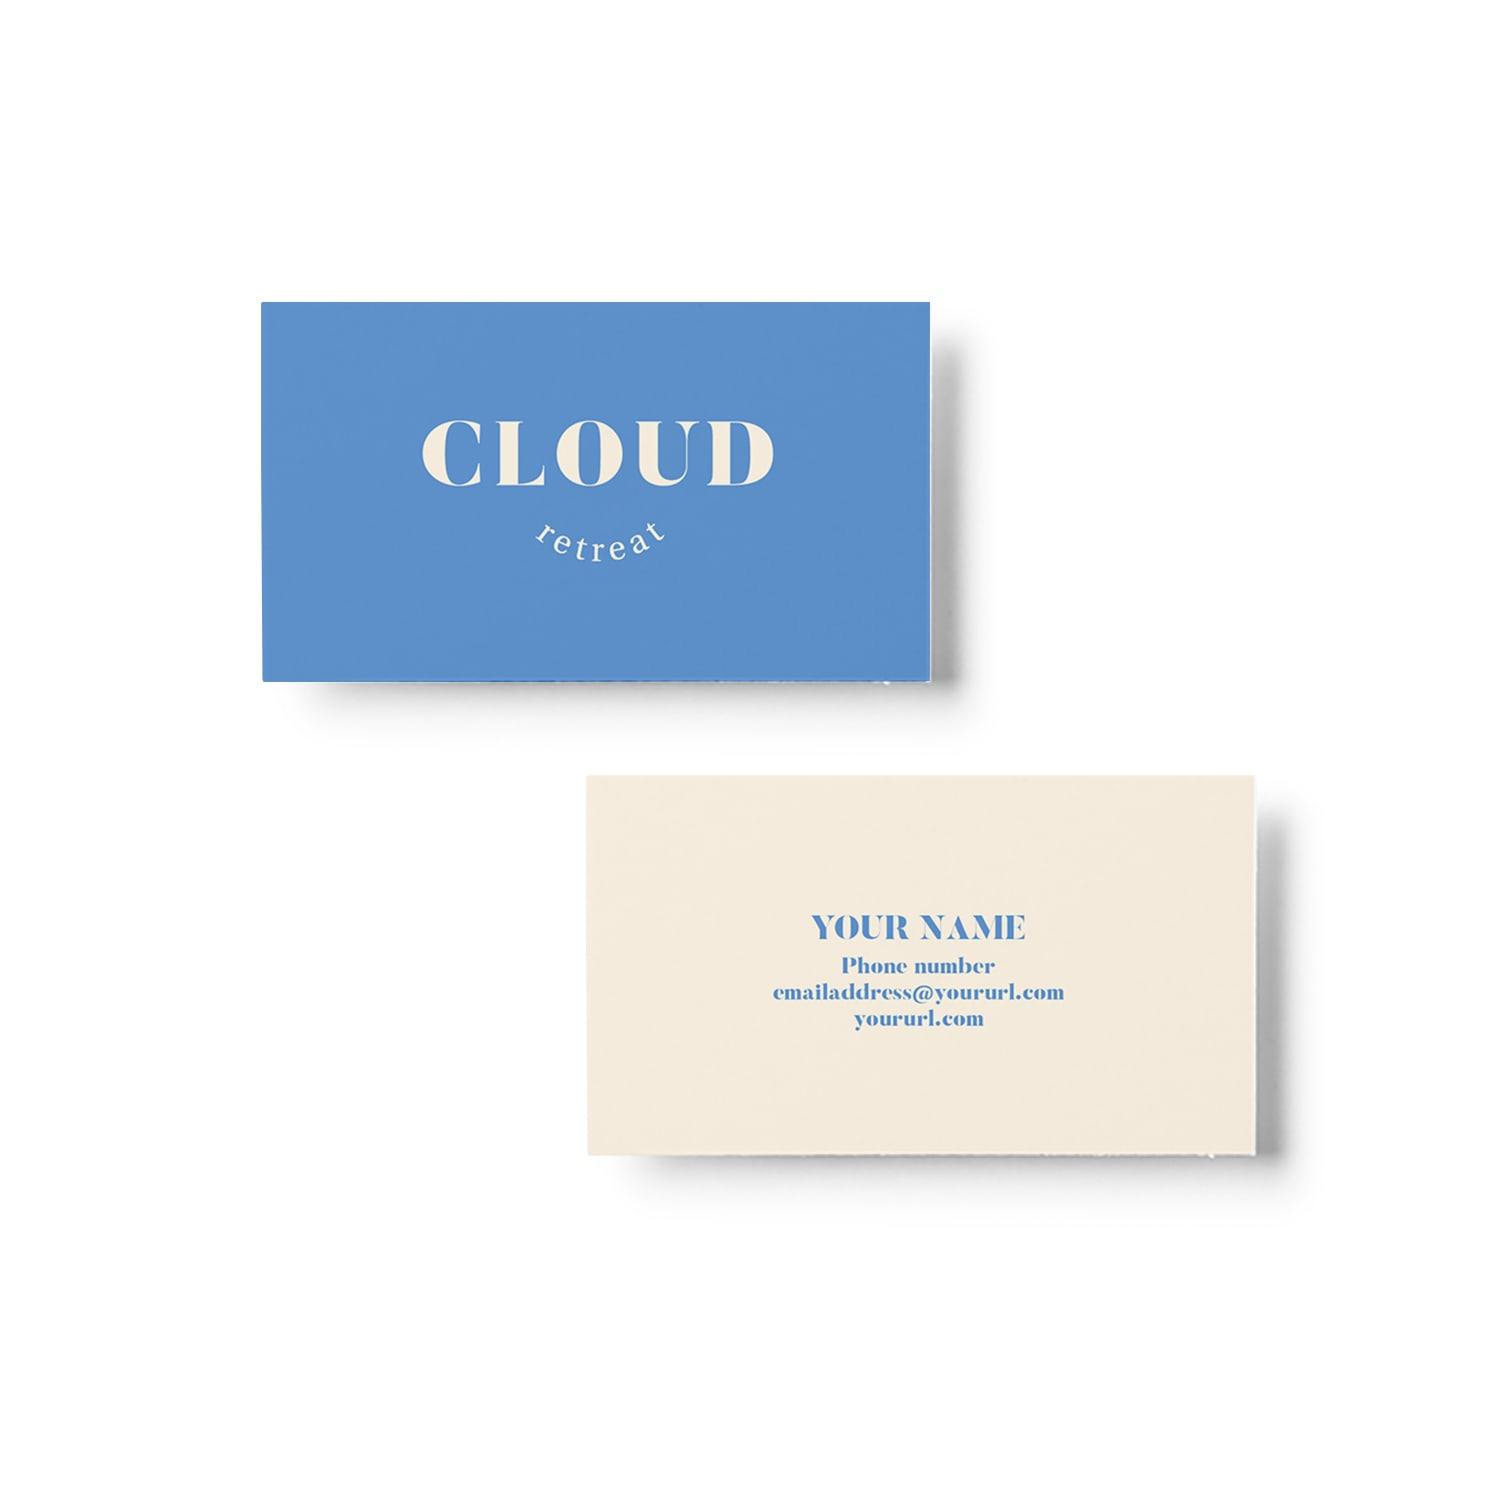 Cloud Retreat Business Card Design_Copyright Tiny Crowd